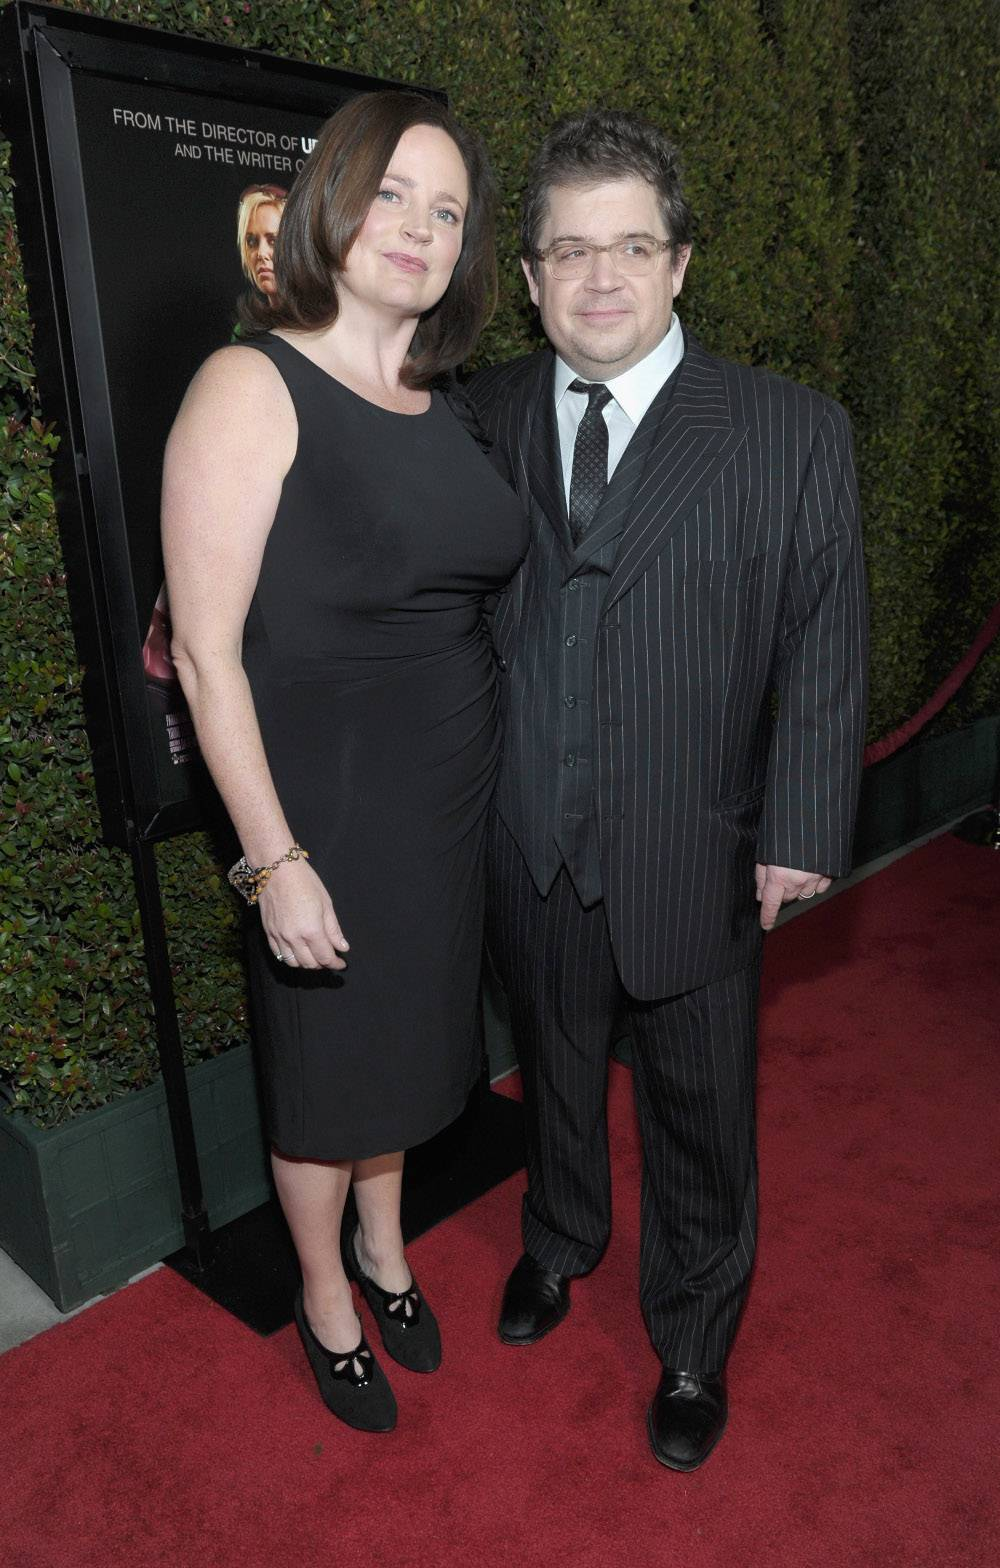 Patton Oswalt & Michelle McNamara